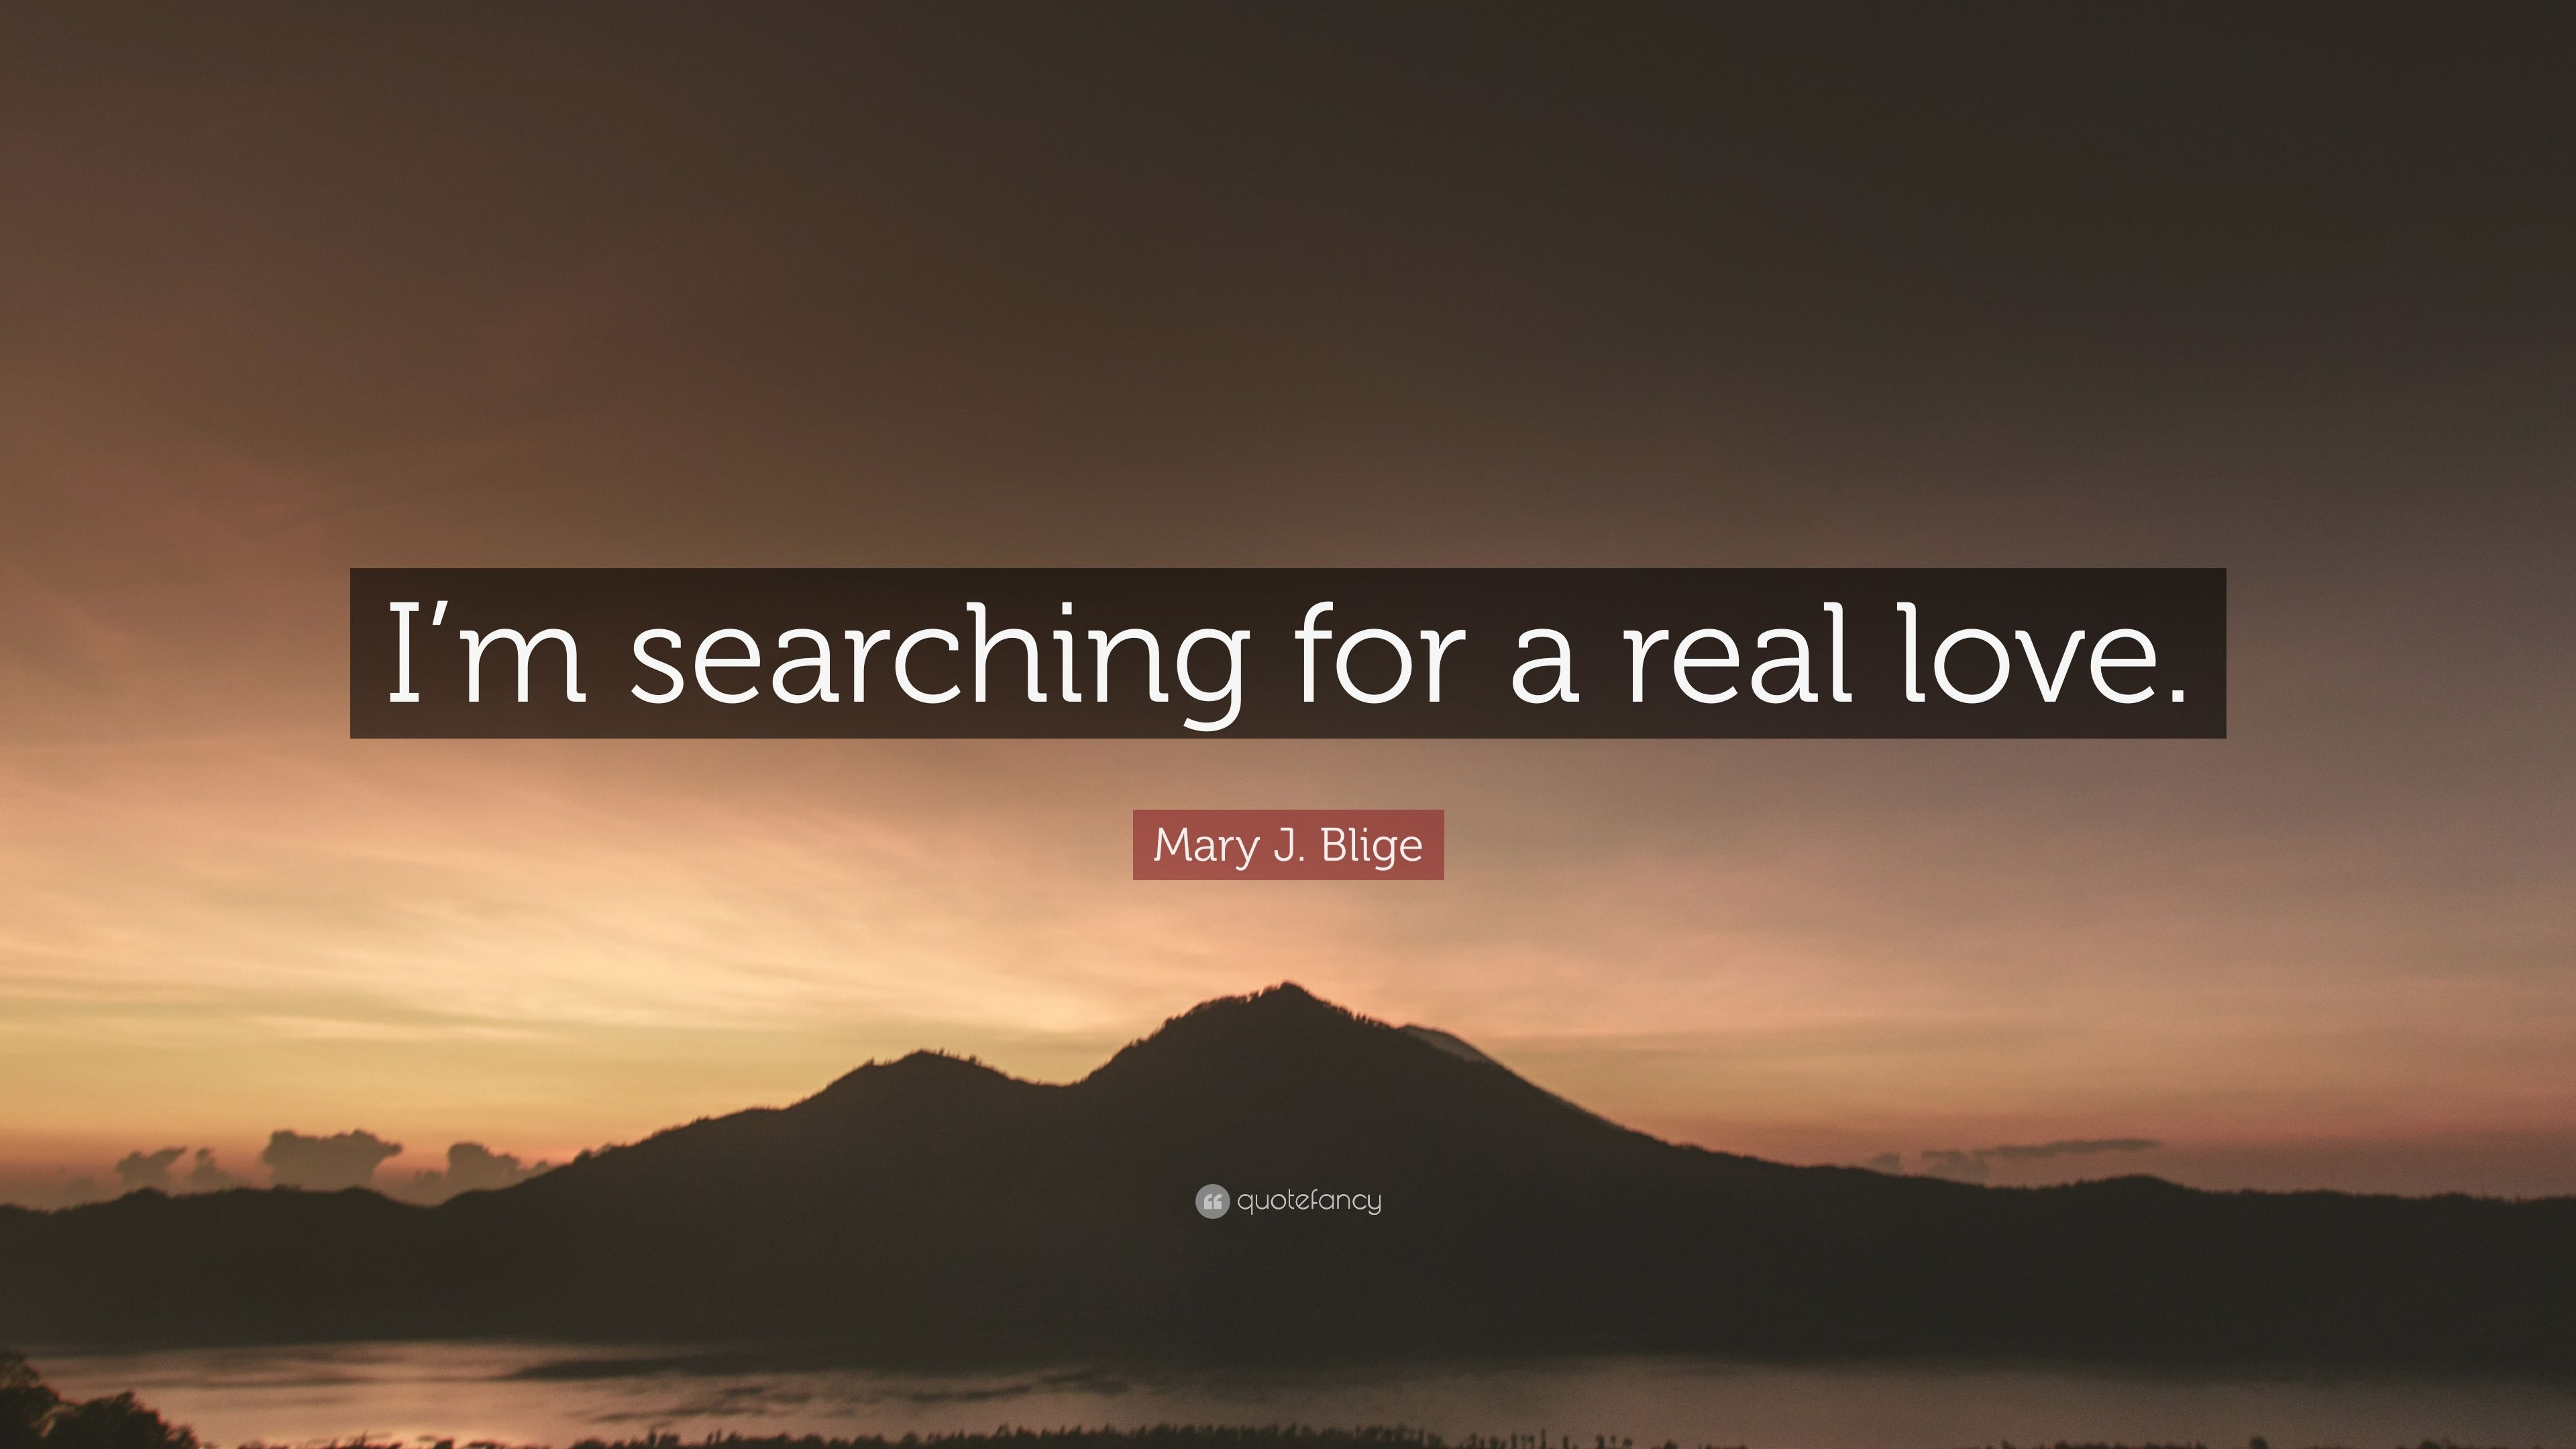 Im searching for a real love